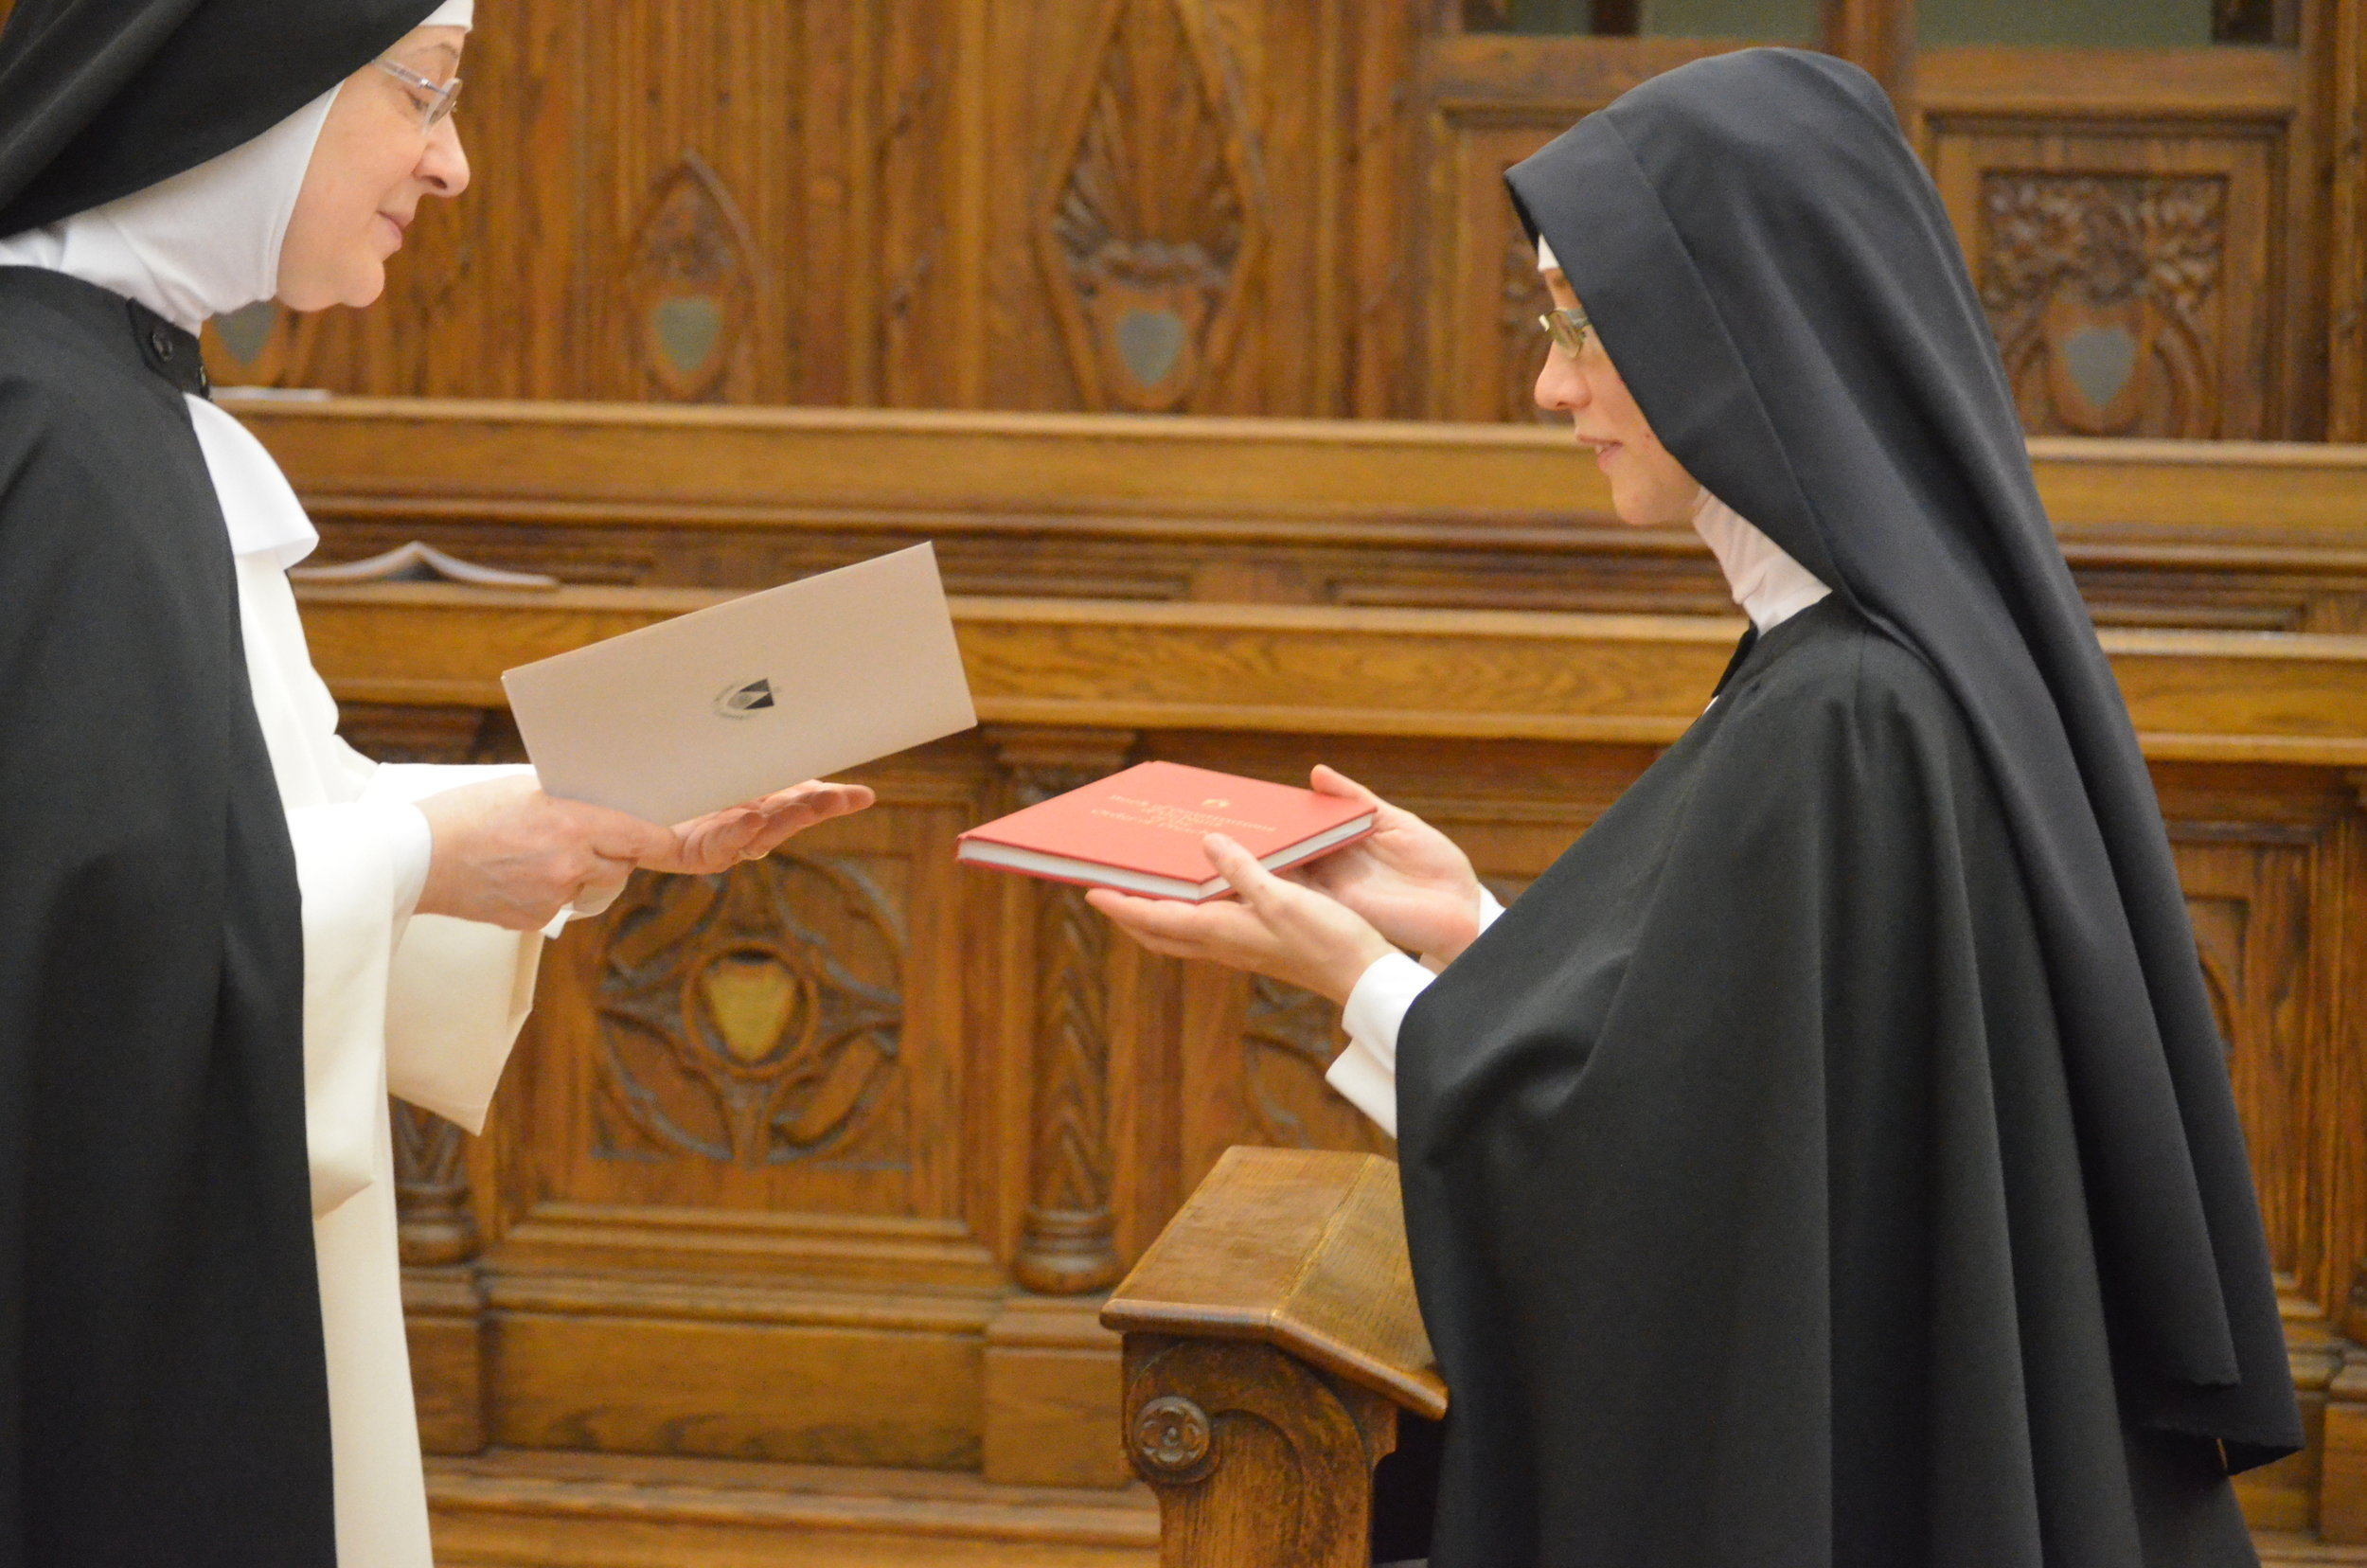 Reception of the Constitutions of Nuns of the Order of Preachers